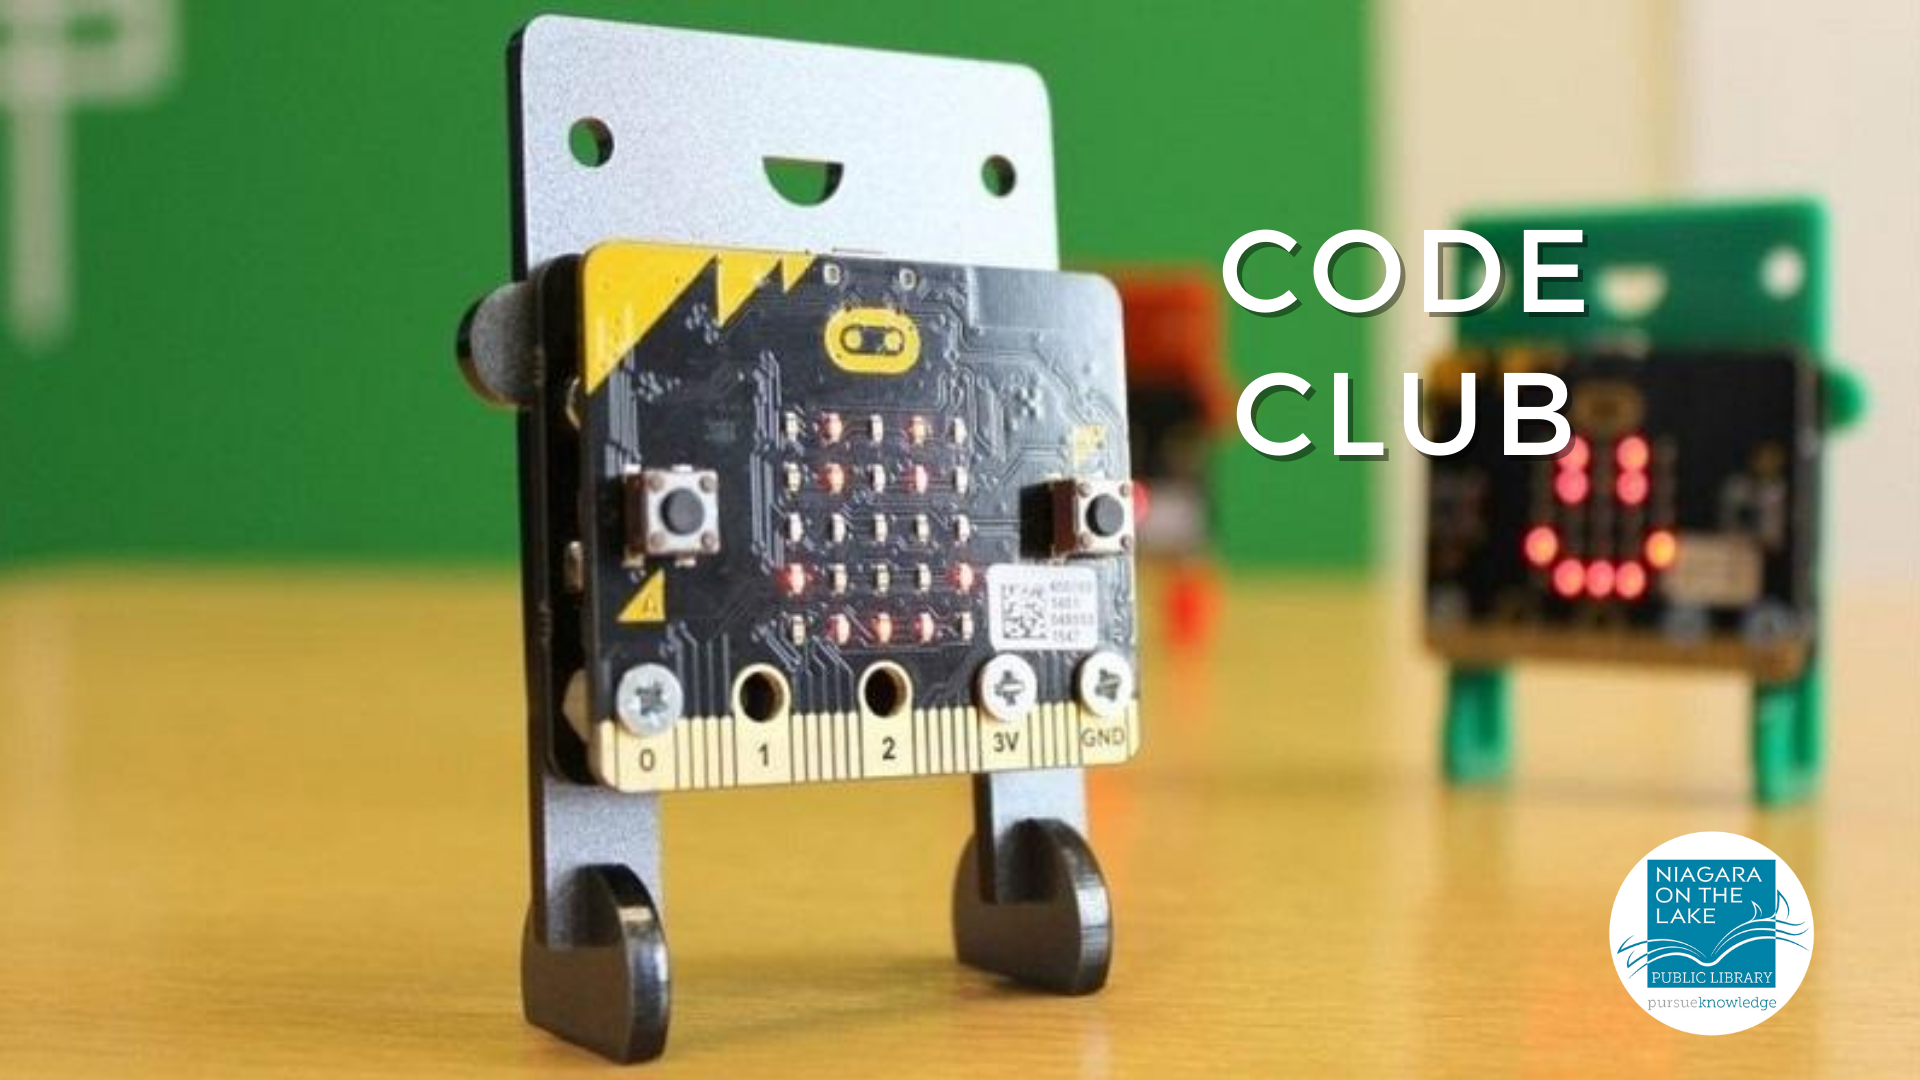 Code Club Learn More Link